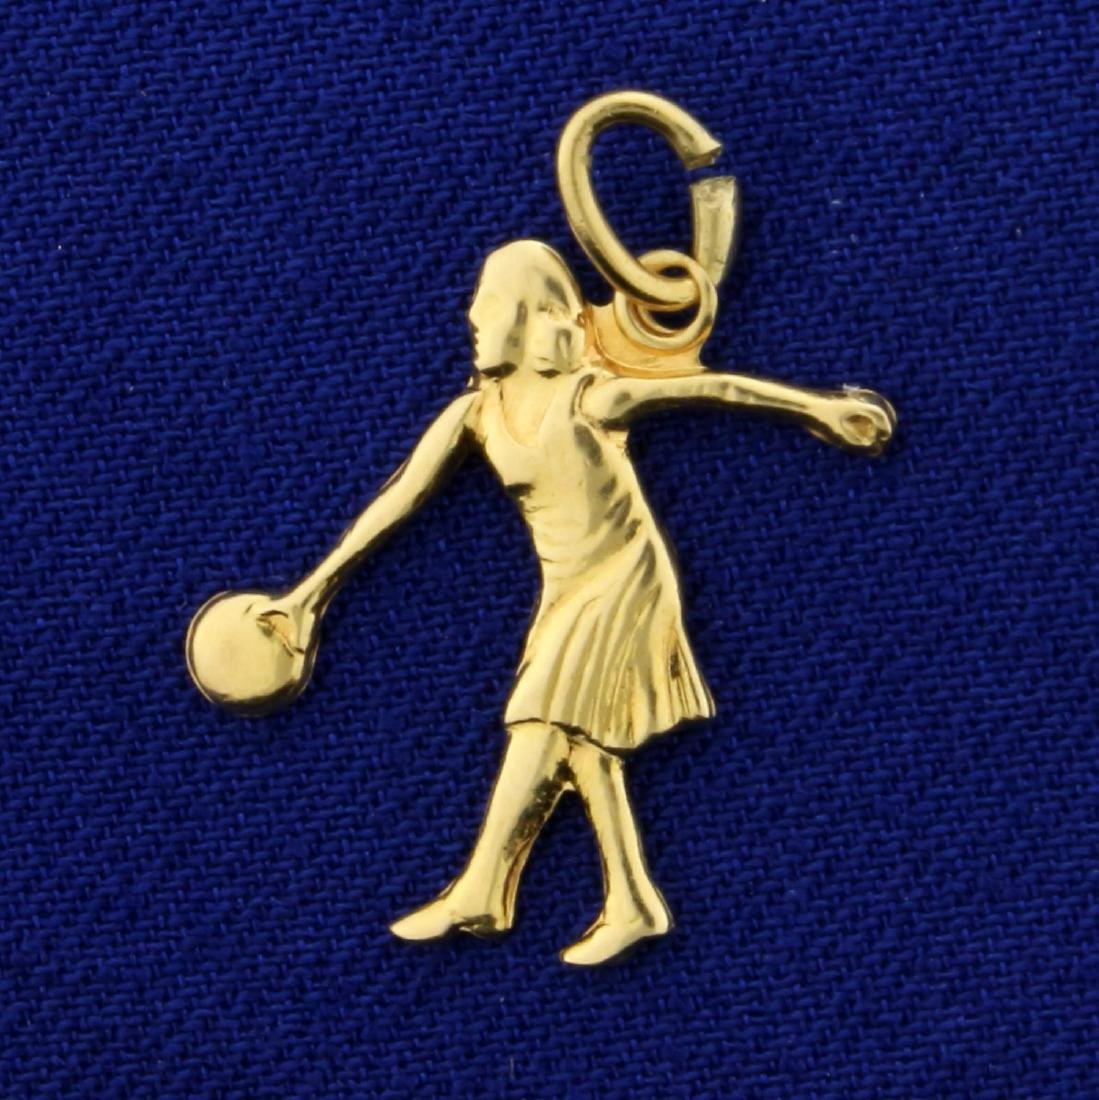 Woman Bowling Charm or Pendant in 14K Yellow Gold